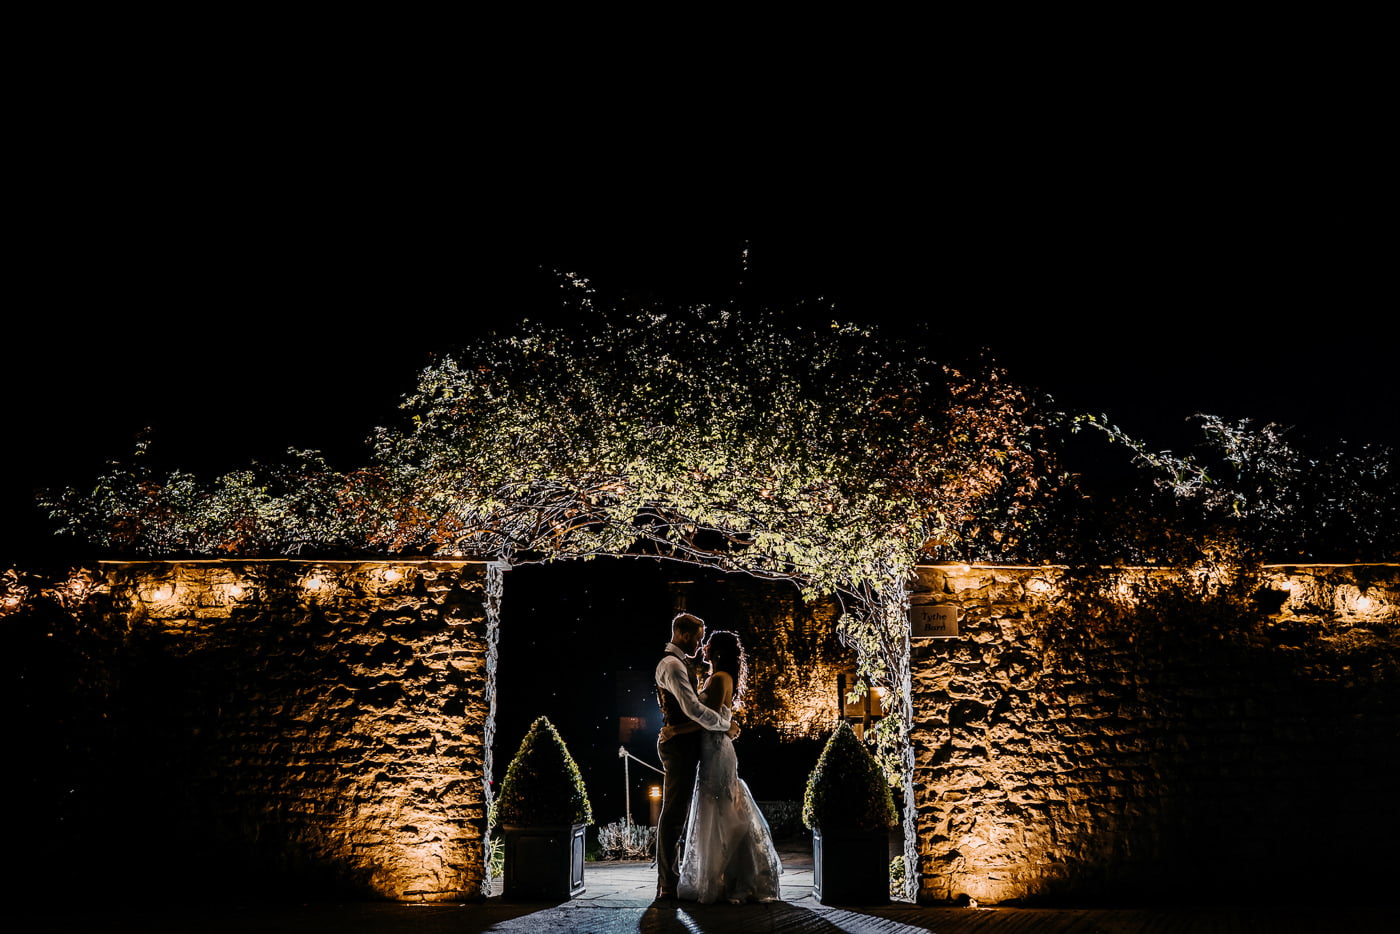 bride and groom stood by wall in the dark